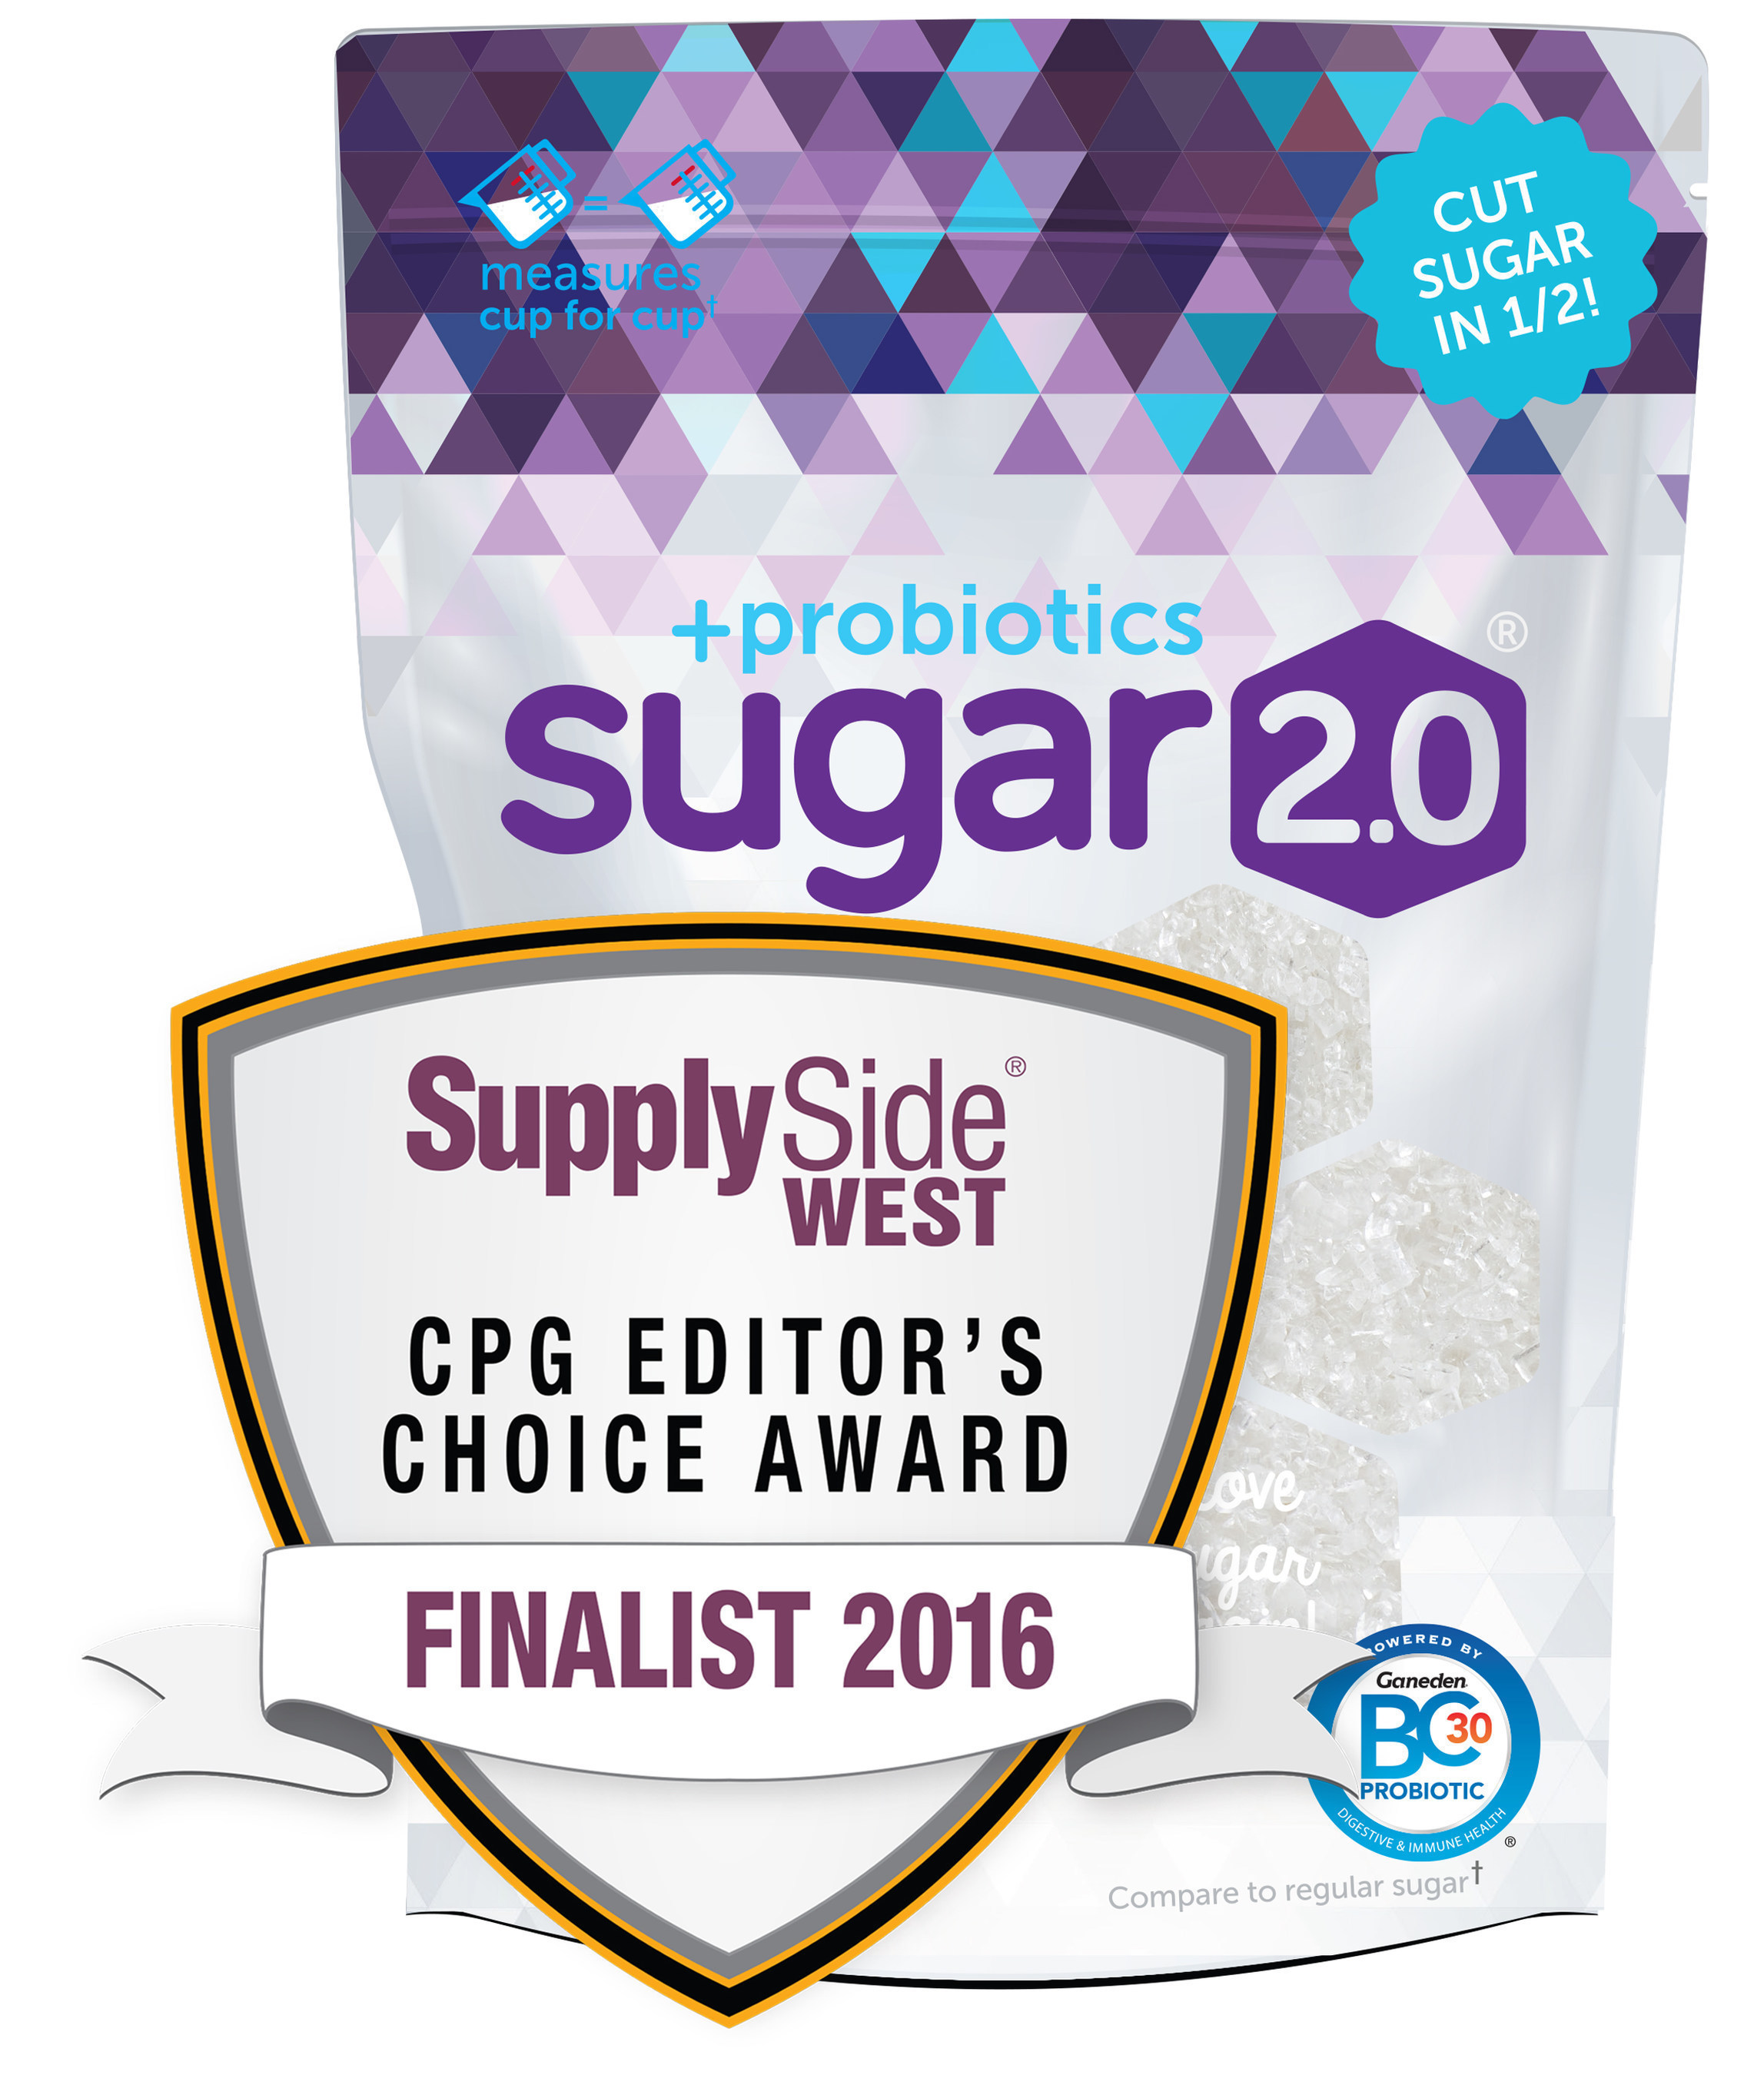 Sugar 2.0 + Probiotics Named Among Top CPG Products for Innovation and Market Impact